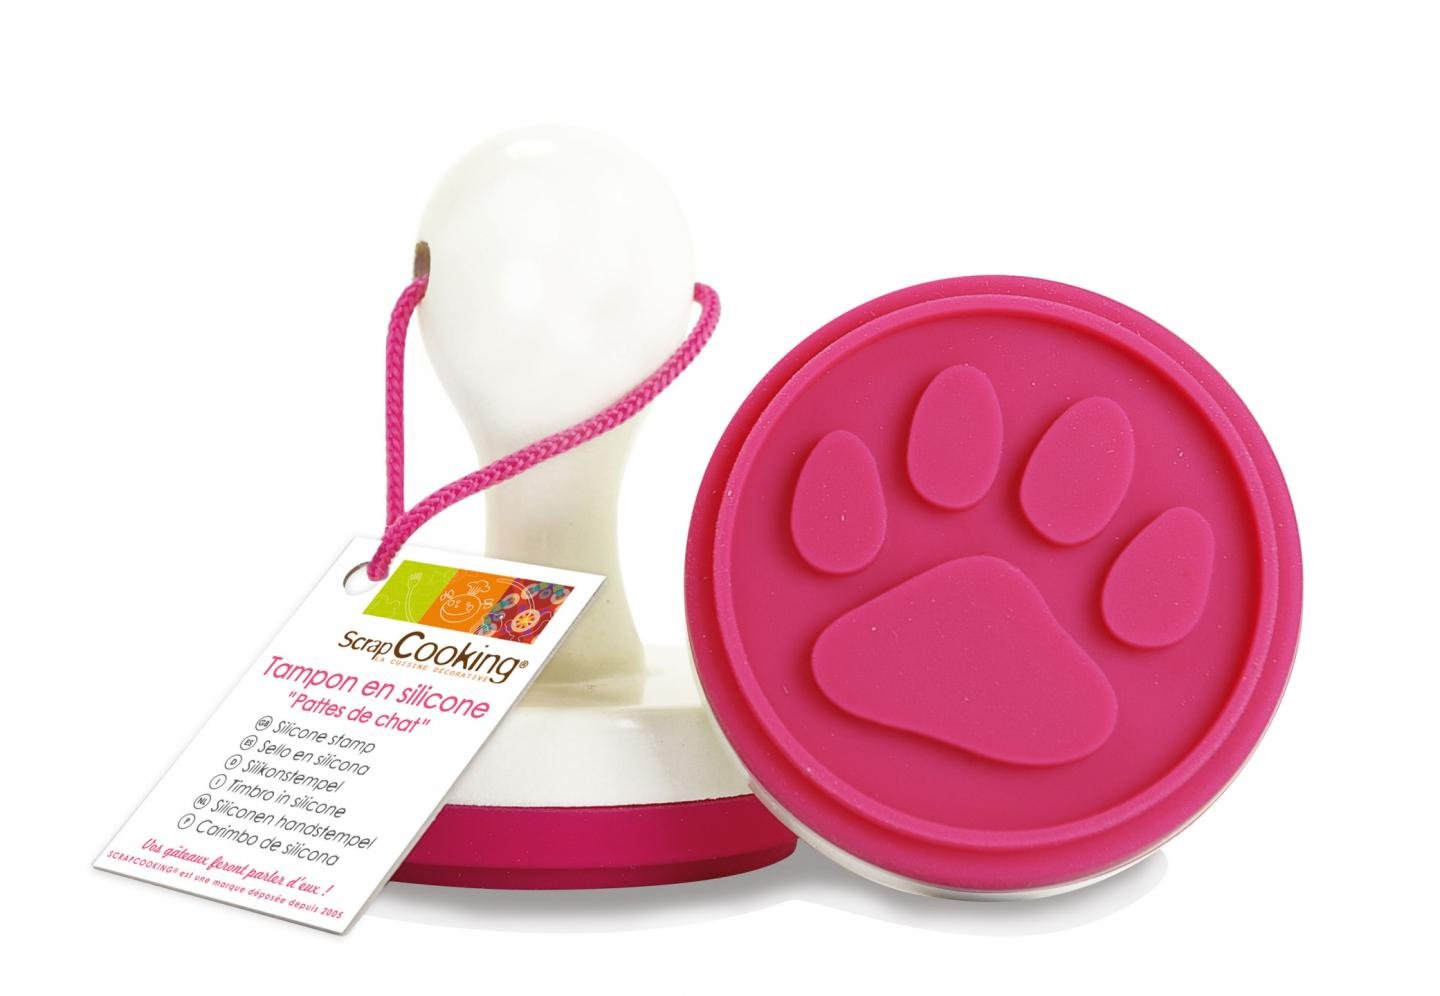 ScrapCooking Paw Silicone Stamp with Handle for Cookies and Fondant 3700392451318